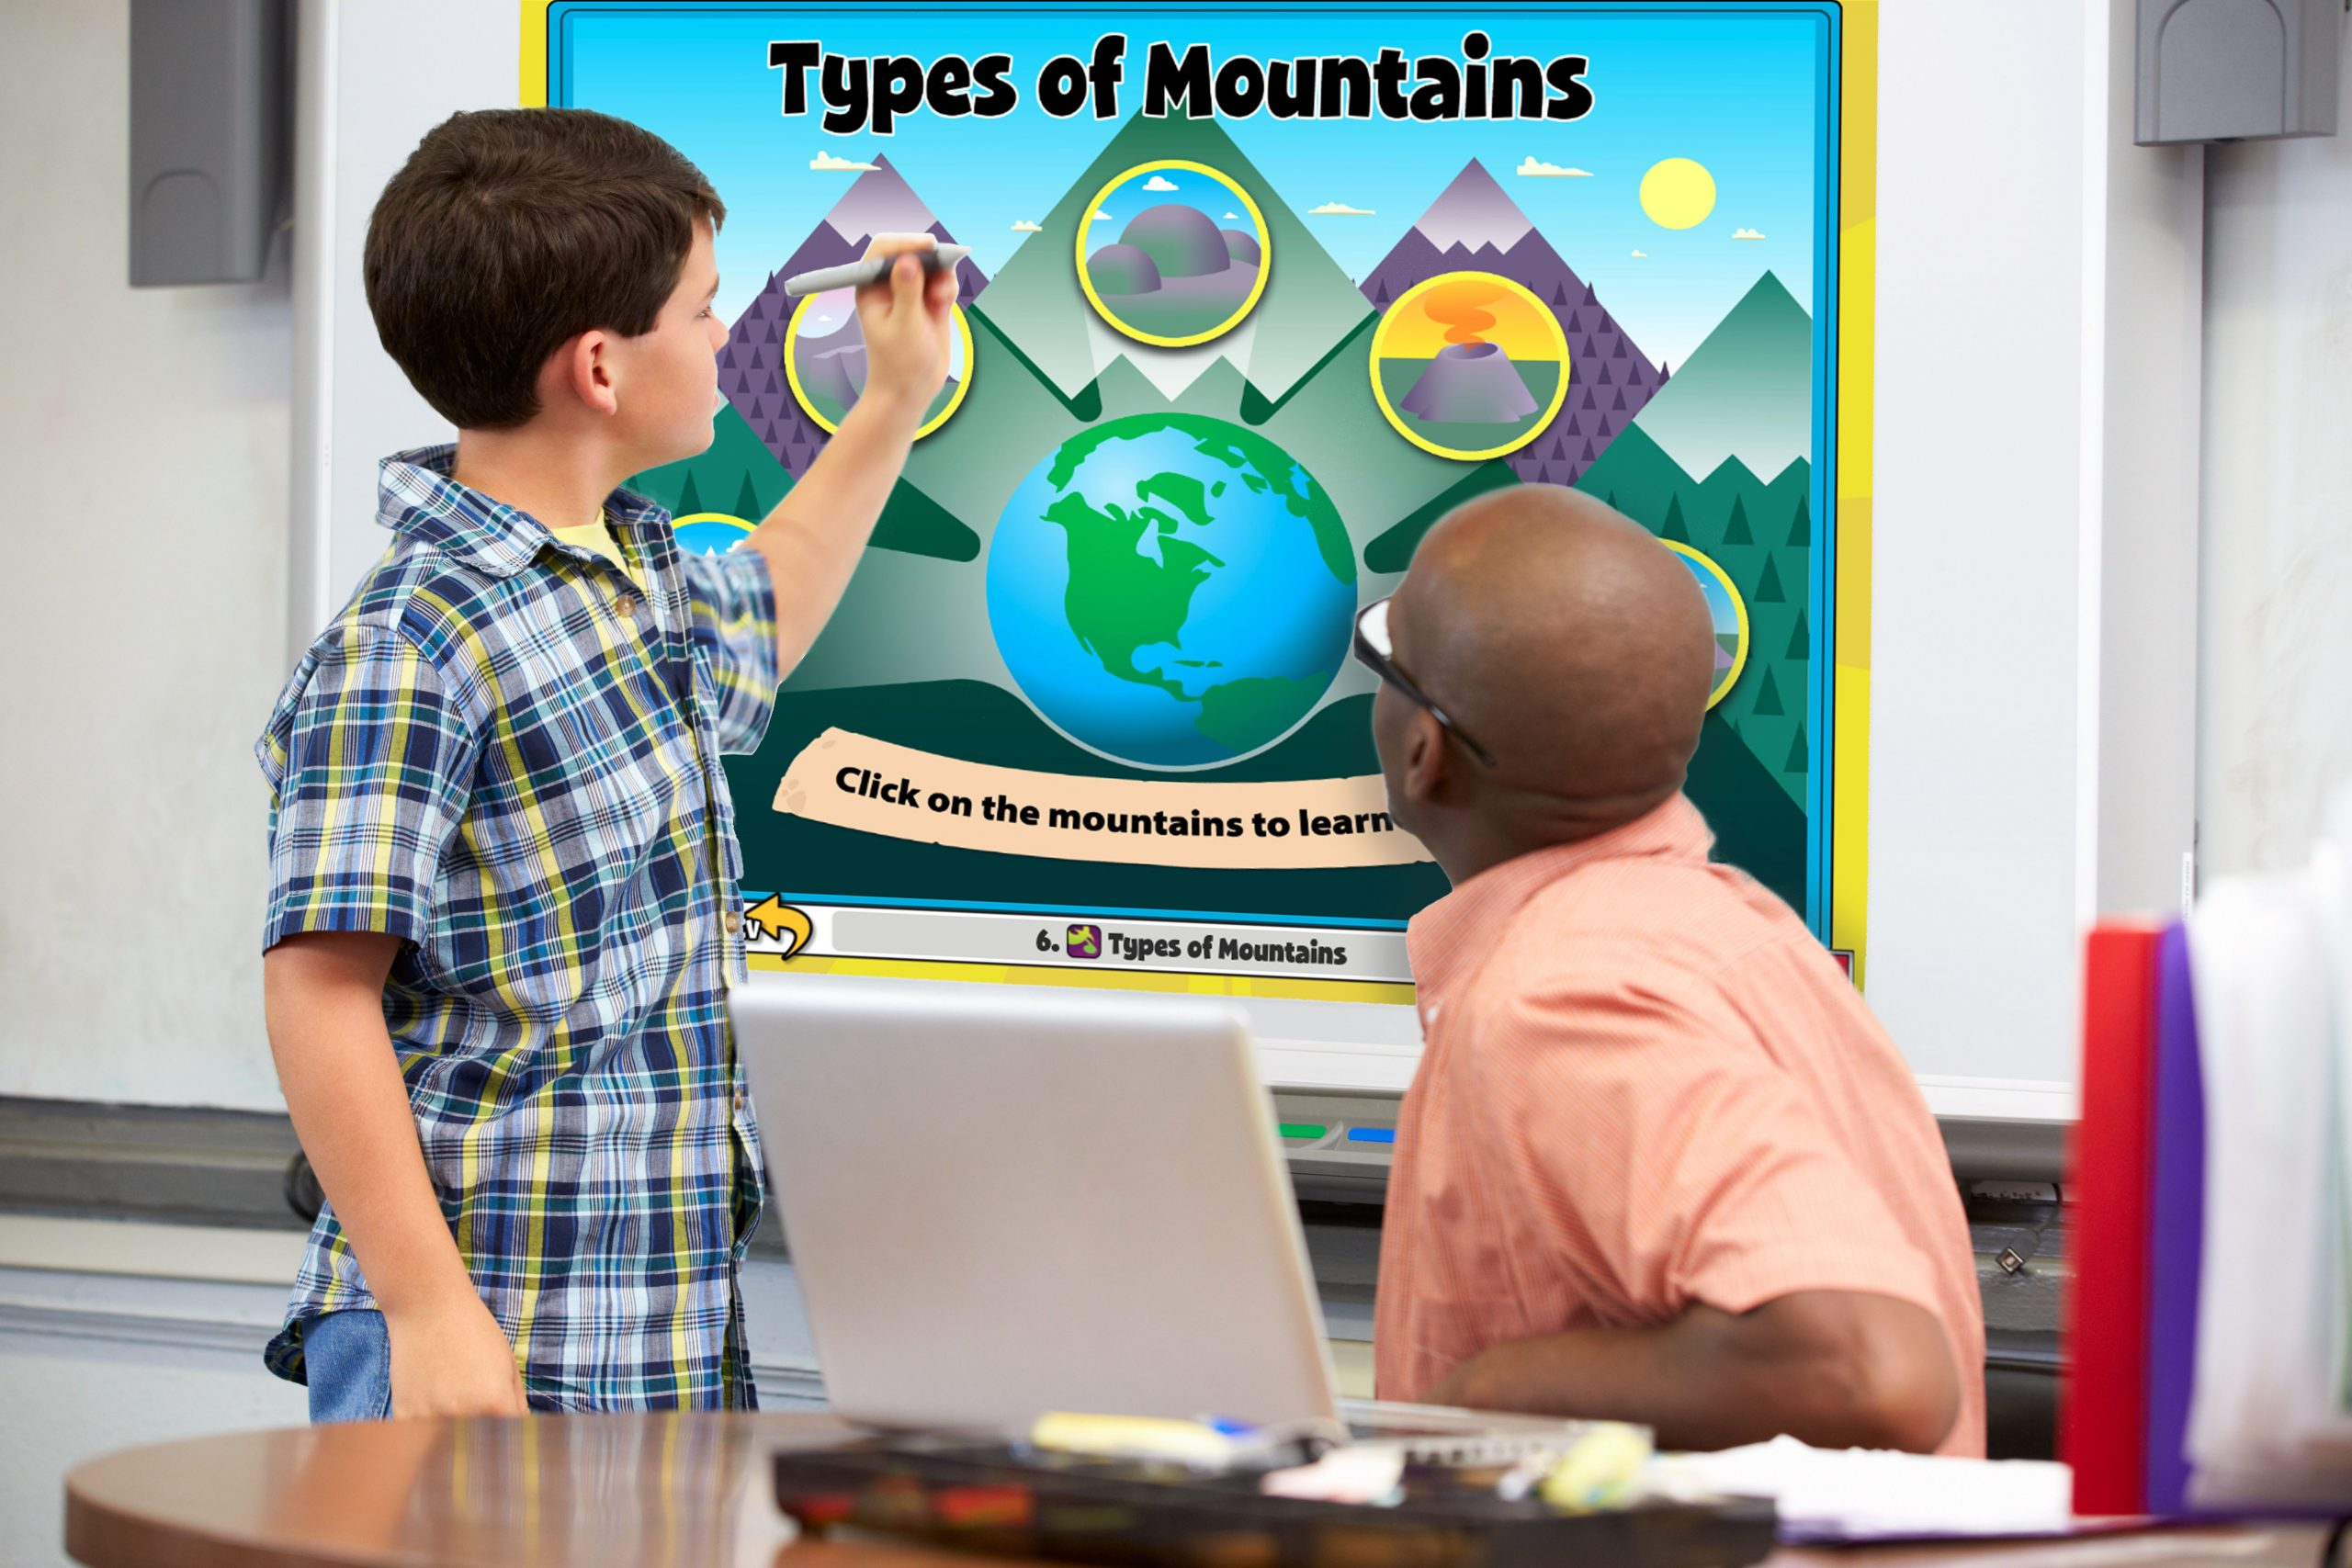 Student and Teacher work together on whiteboard activity involving types of mountains.